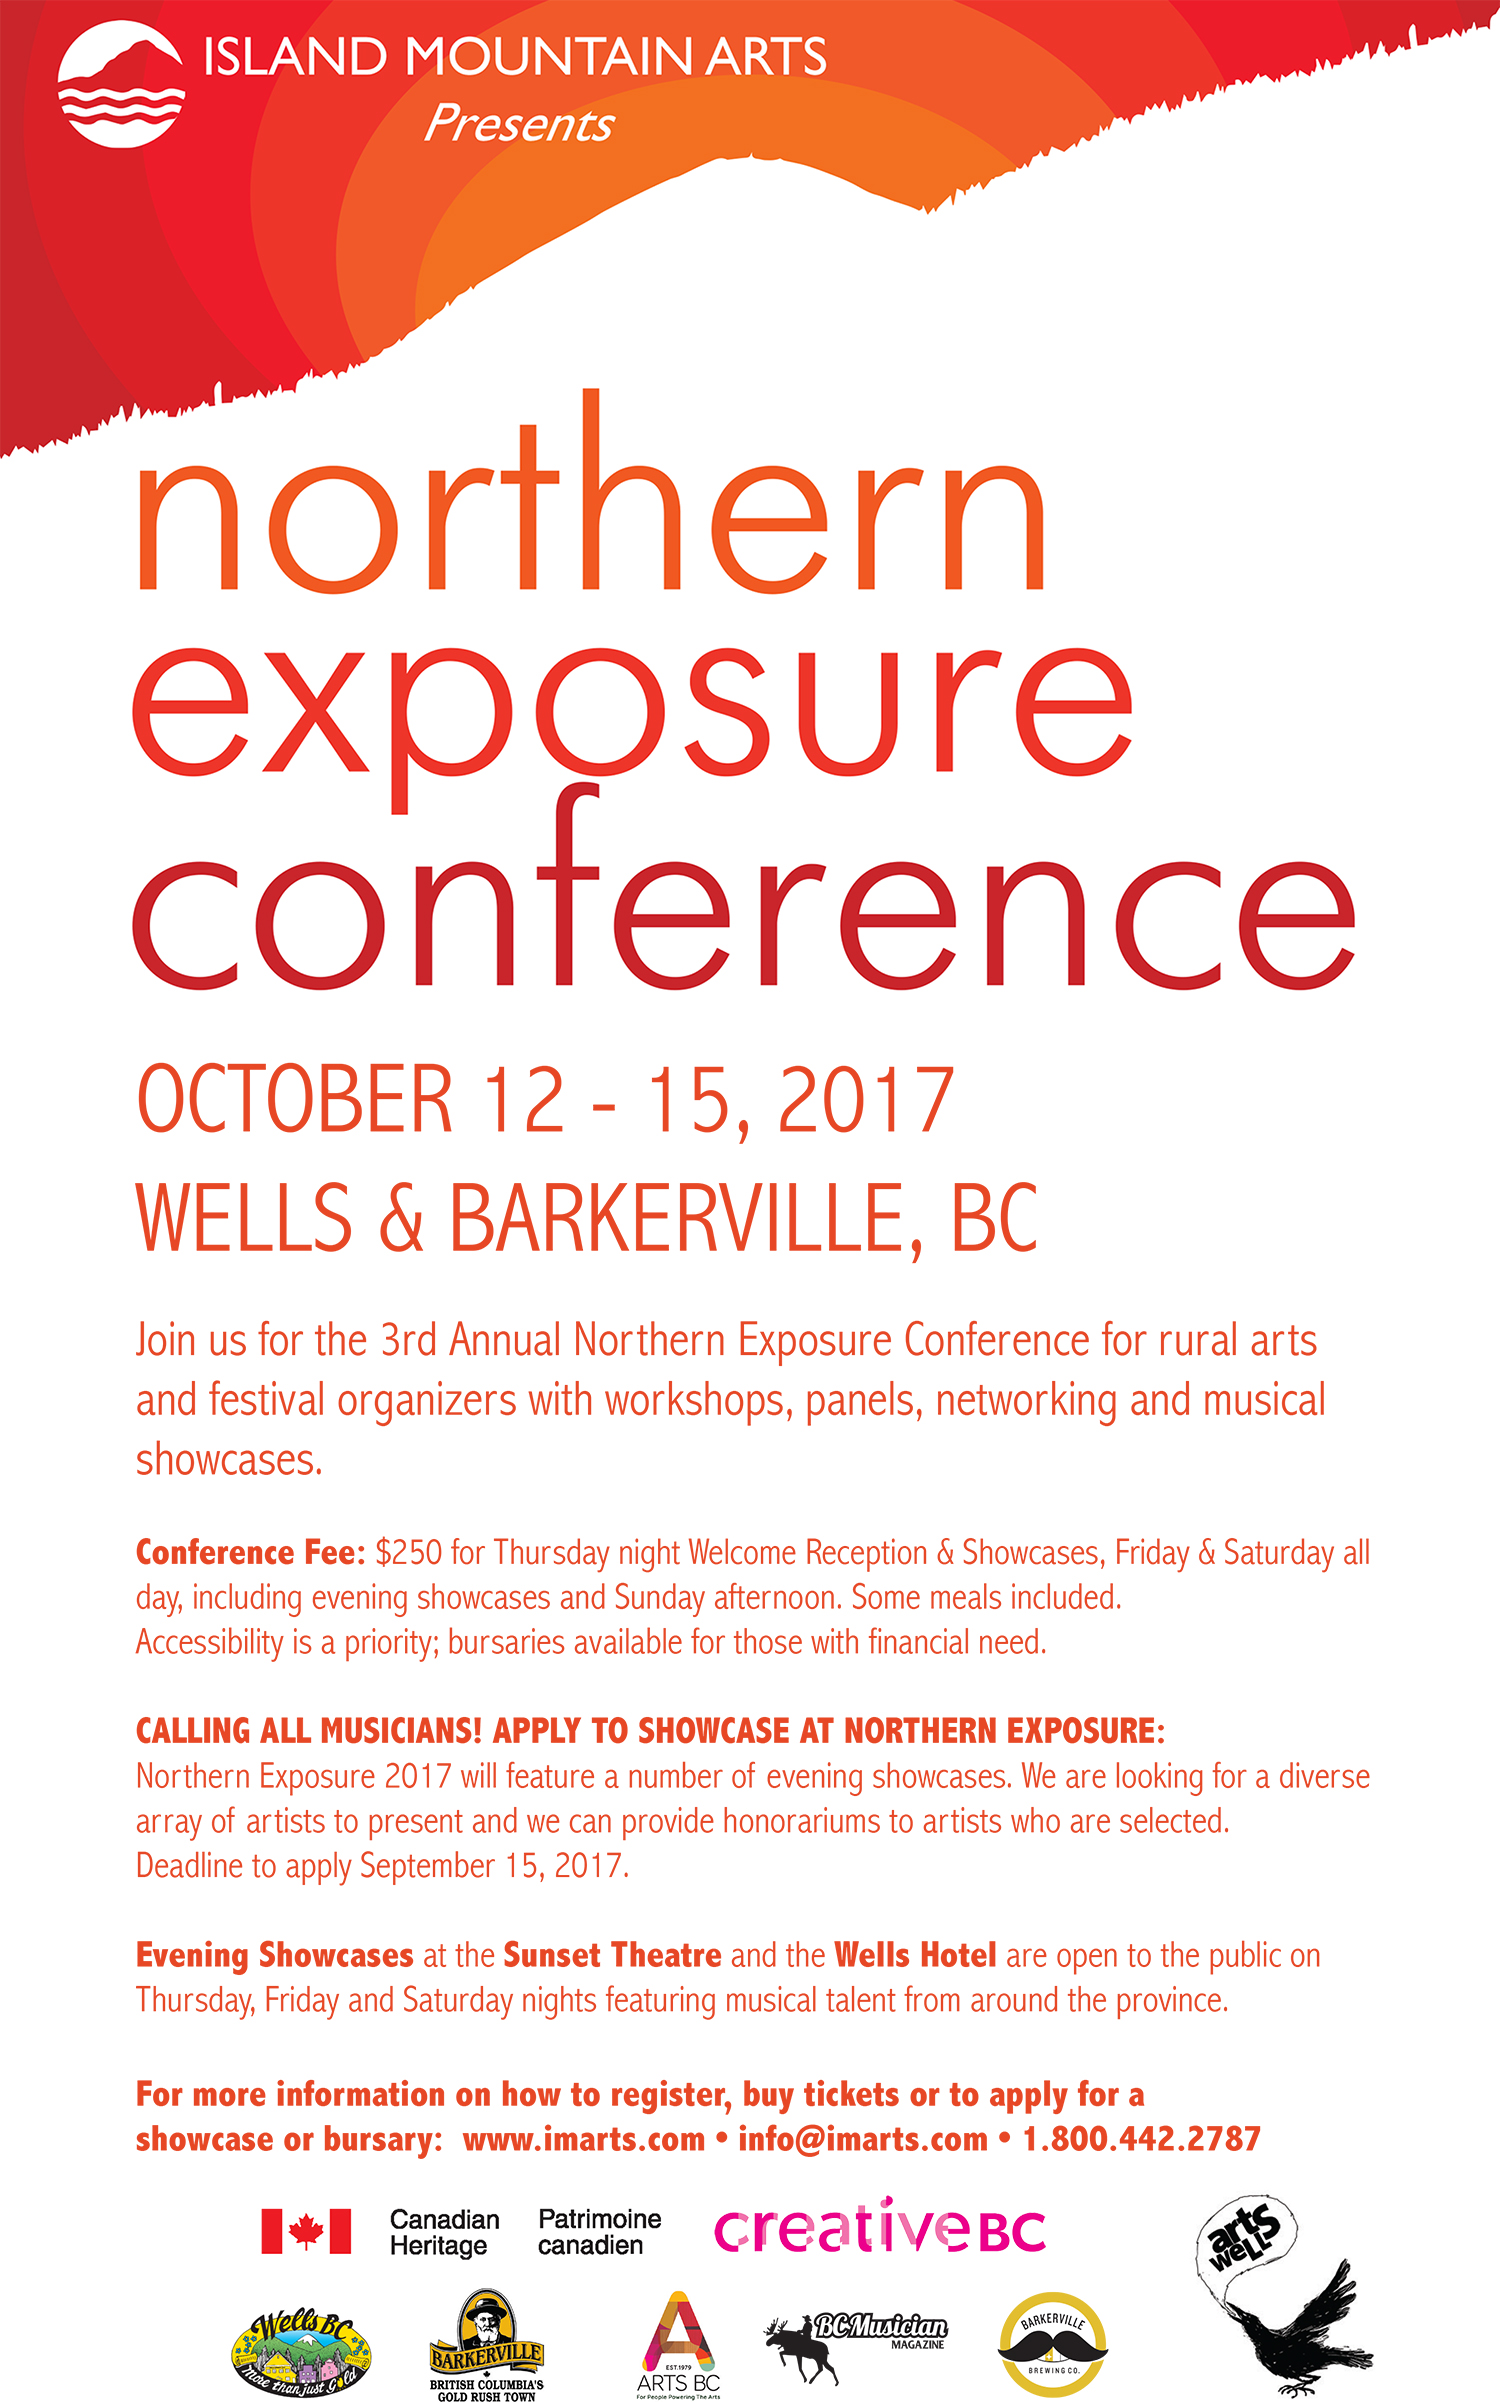 Northern Exposure Poster_2017V2_small.jpg